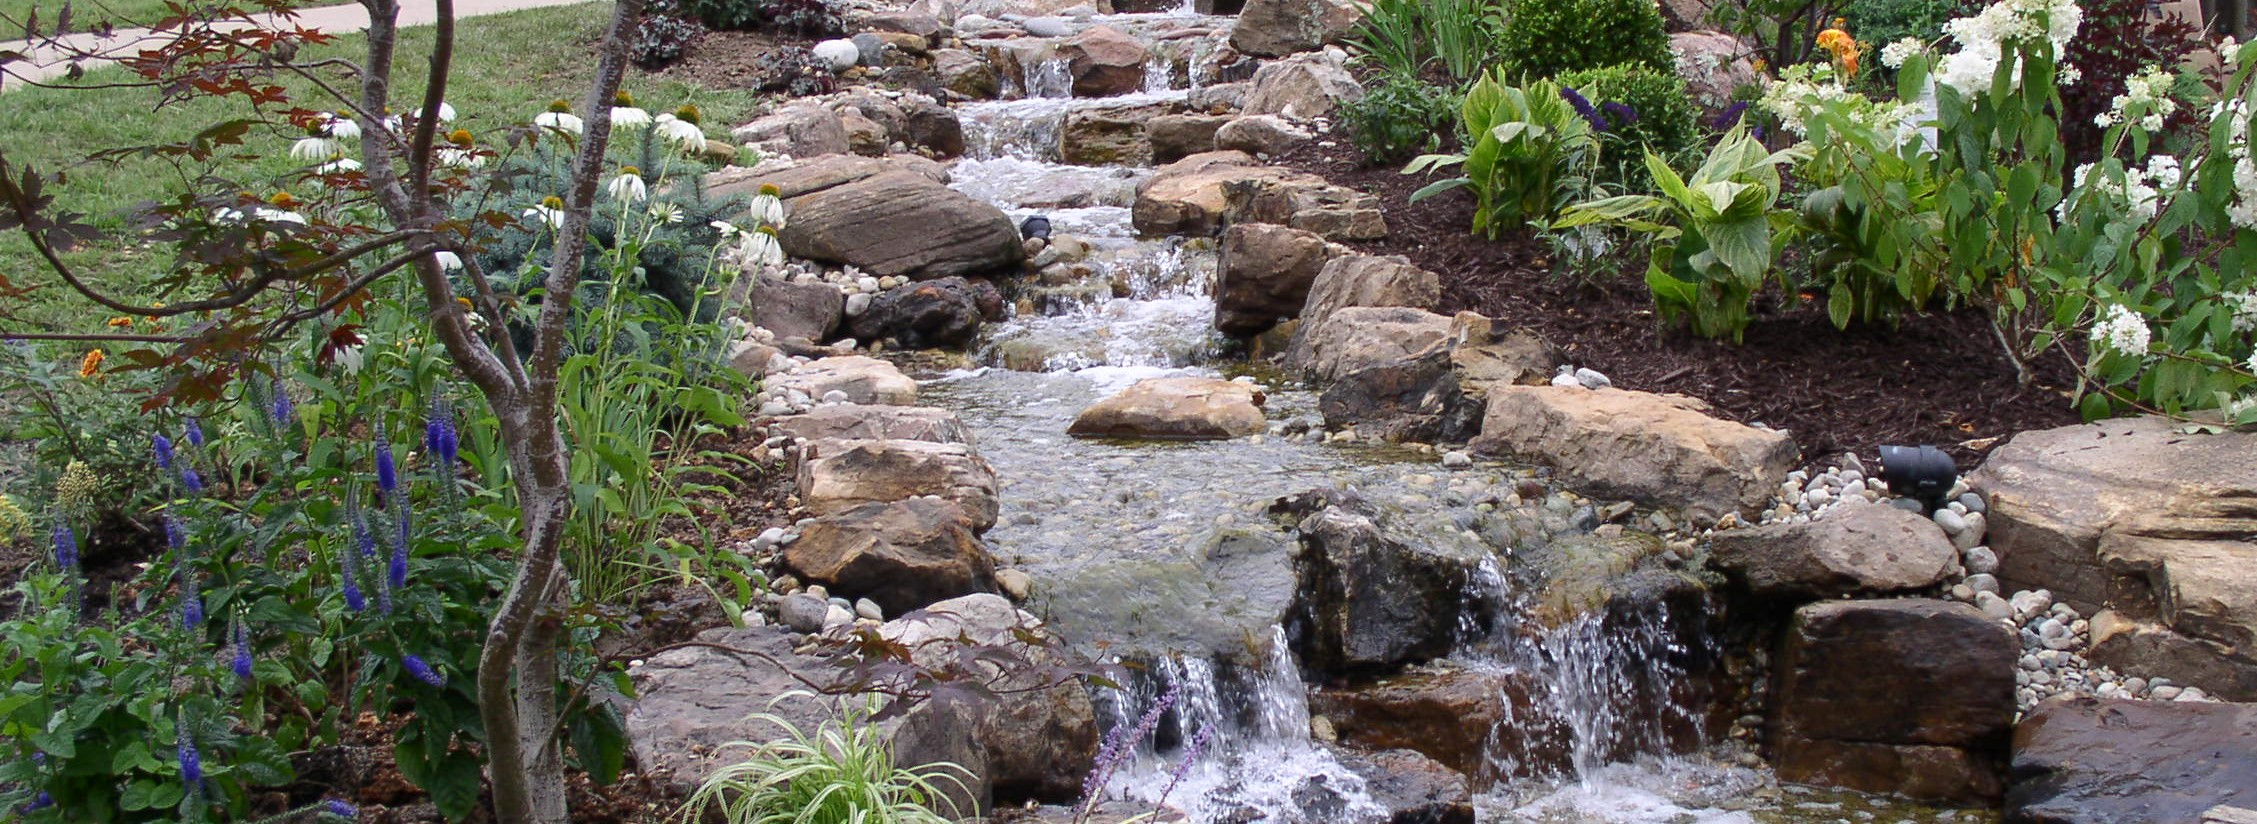 Kansas City Hardscapes water features